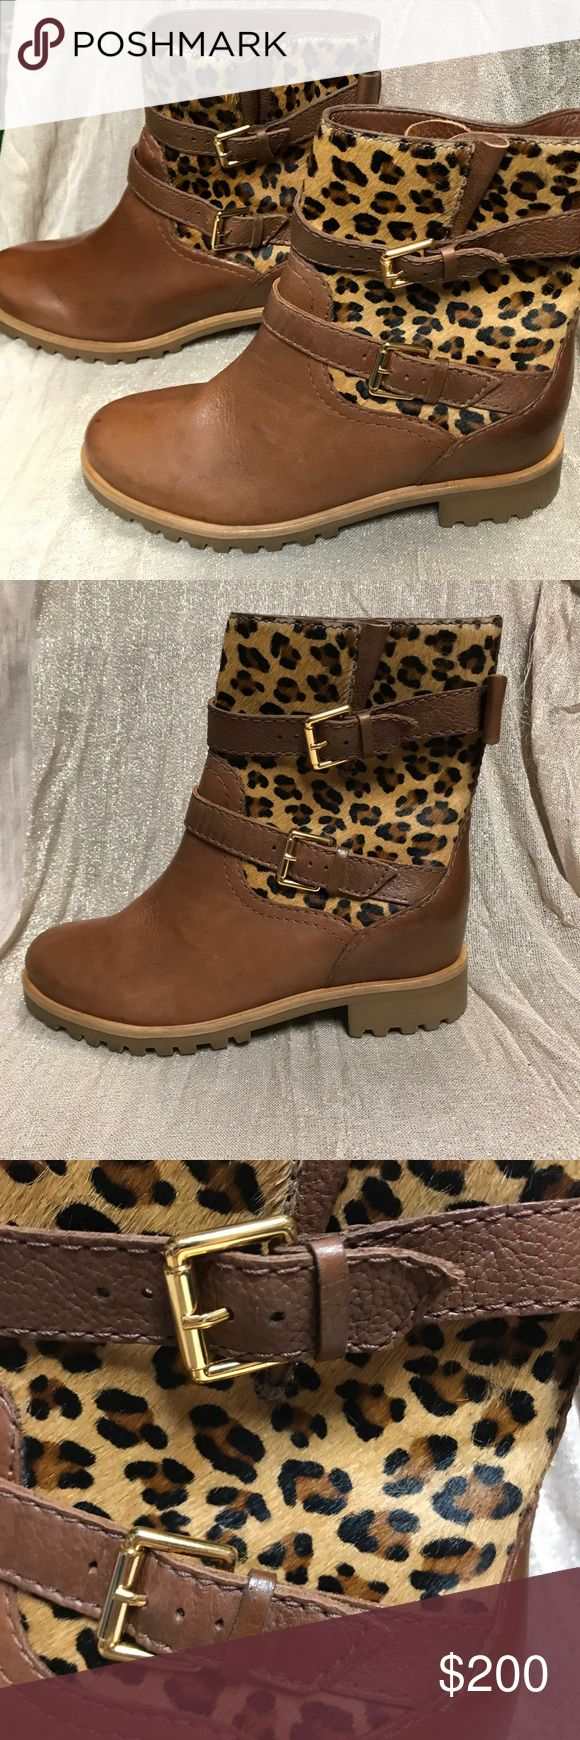 """Kate Spade Sonia Cheetah Buckle Boots DETAILS & CARE A bow-accented belt cinches the expandable, genuine calf hair shaft of a supple leather boot finished with a tiny goldtone spade charm in back. 1 1/4"""" heel (size 9M). 7"""" boot shaft. Adjustable straps with buckle closure. Genuine calf hair (Brazil) and leather upper/leather lining/rubber sole. By kate spade new york; made in Brazil. Salon Shoes. Size is 7W kate spade Shoes"""